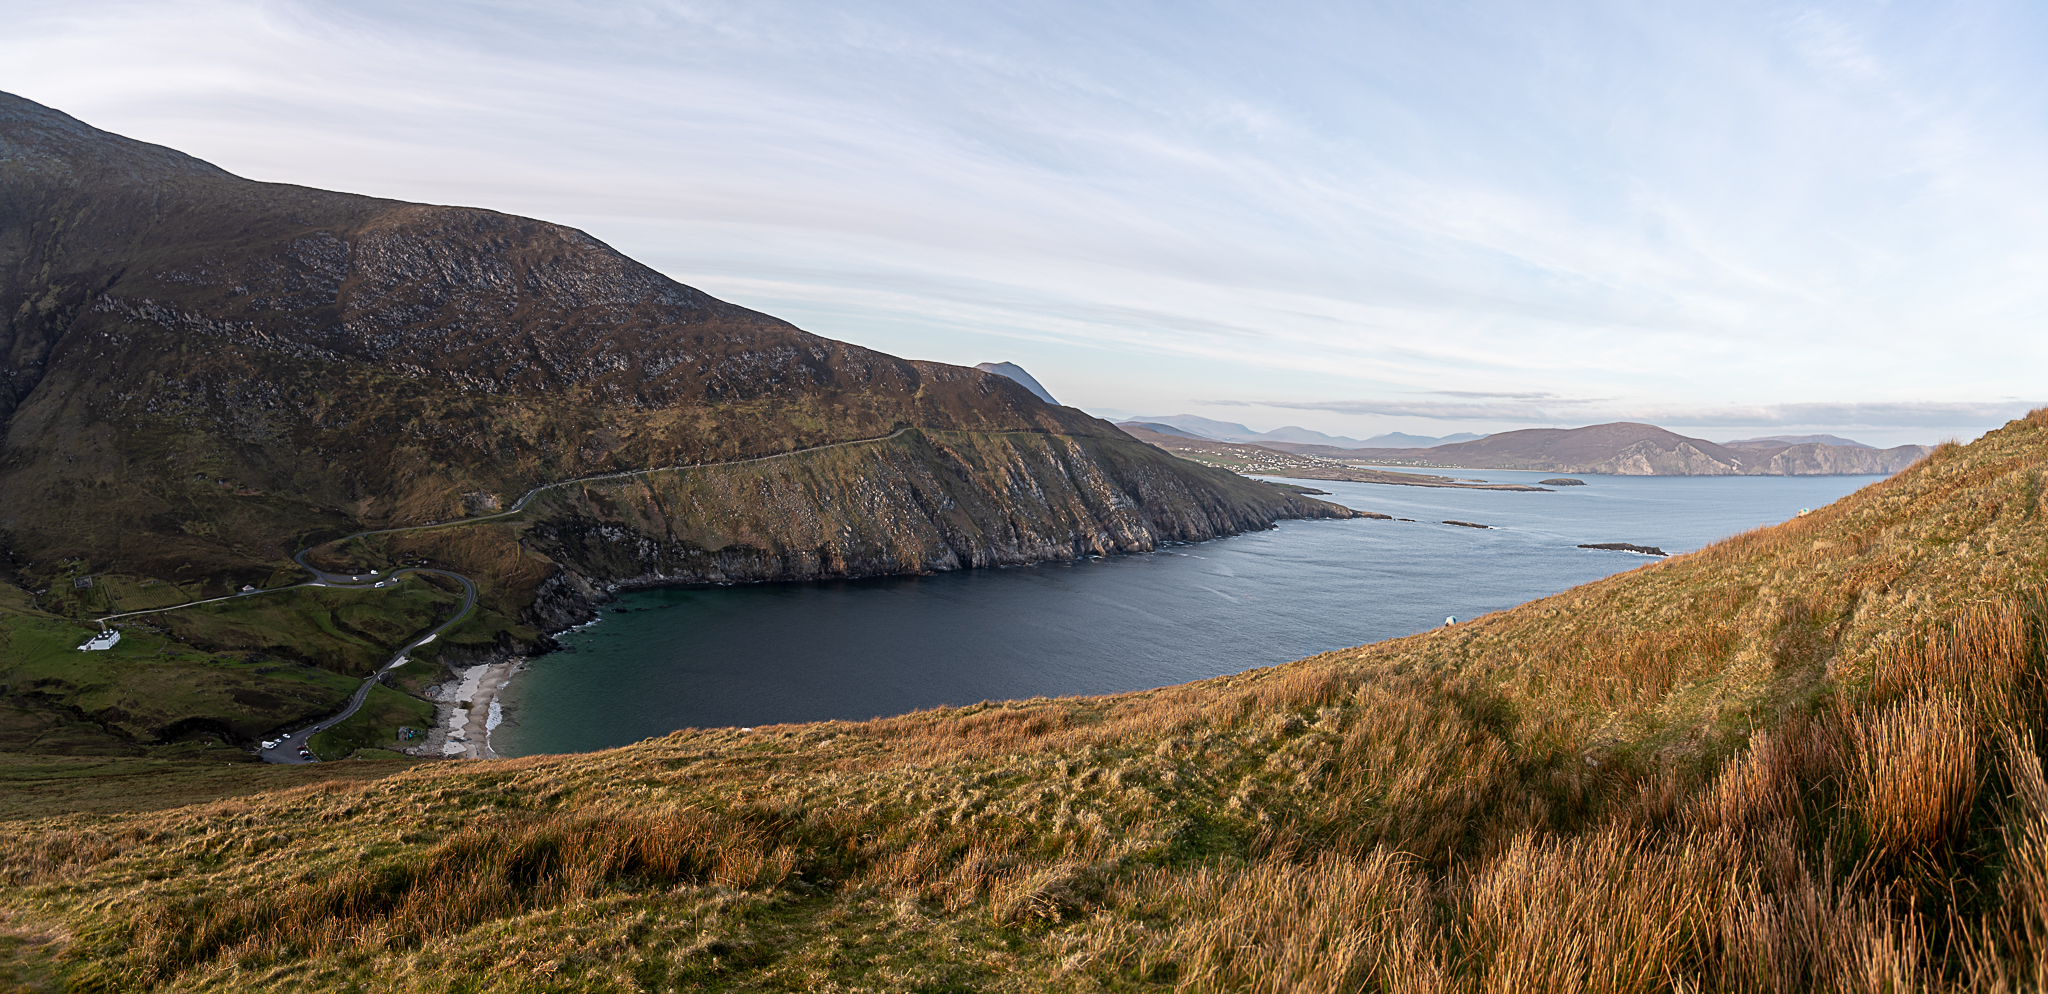 tinyboots, wild atlantic way, achill, ocean, cliffs, coastline, ireland, keem bay, sunset